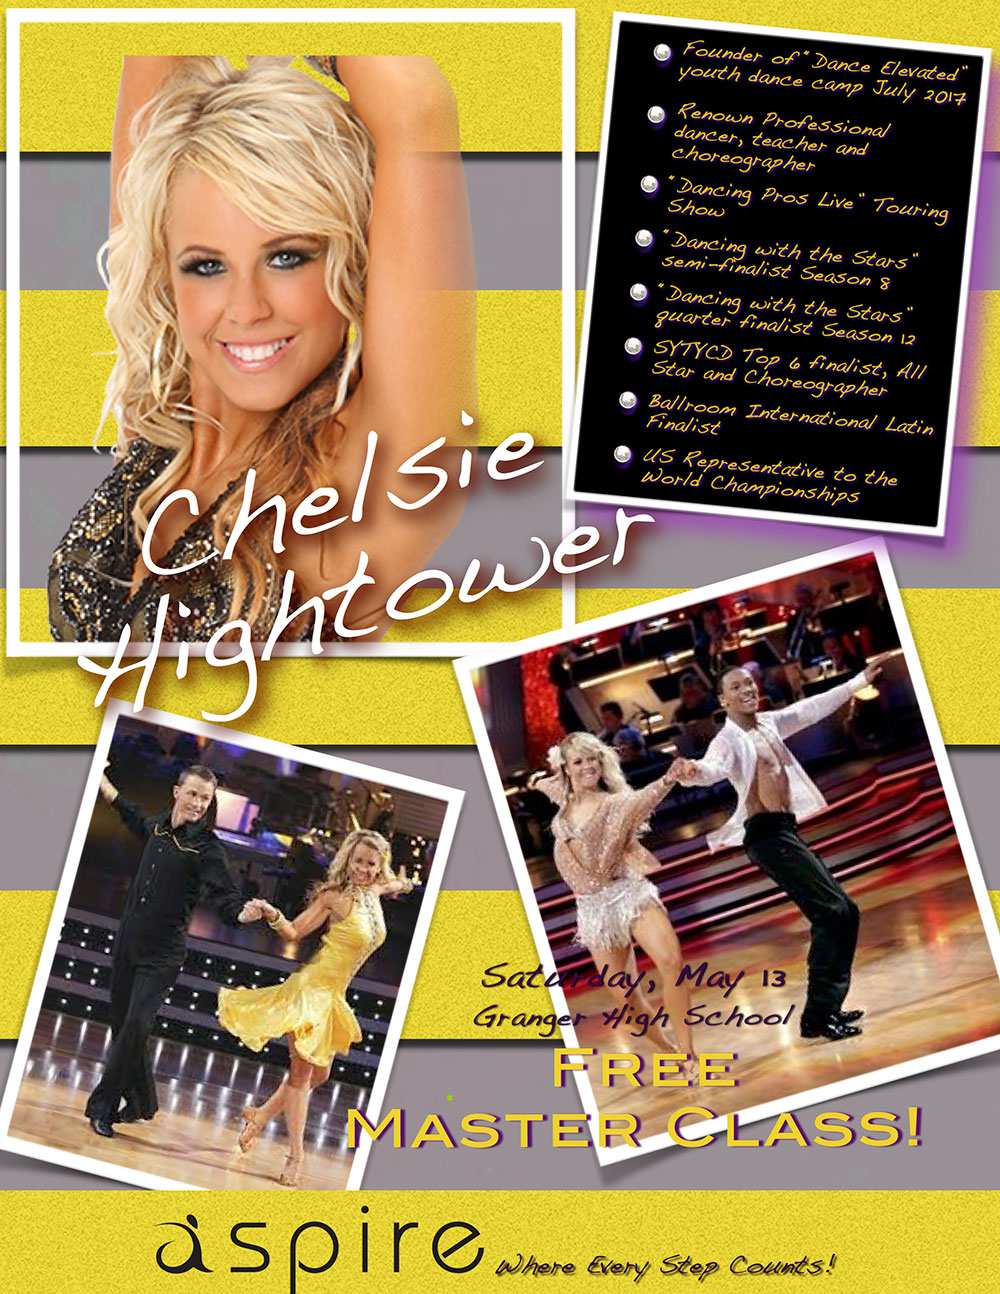 Chelsie Hightower - Aspire Dance Pro Competitions Masterclass Instructor